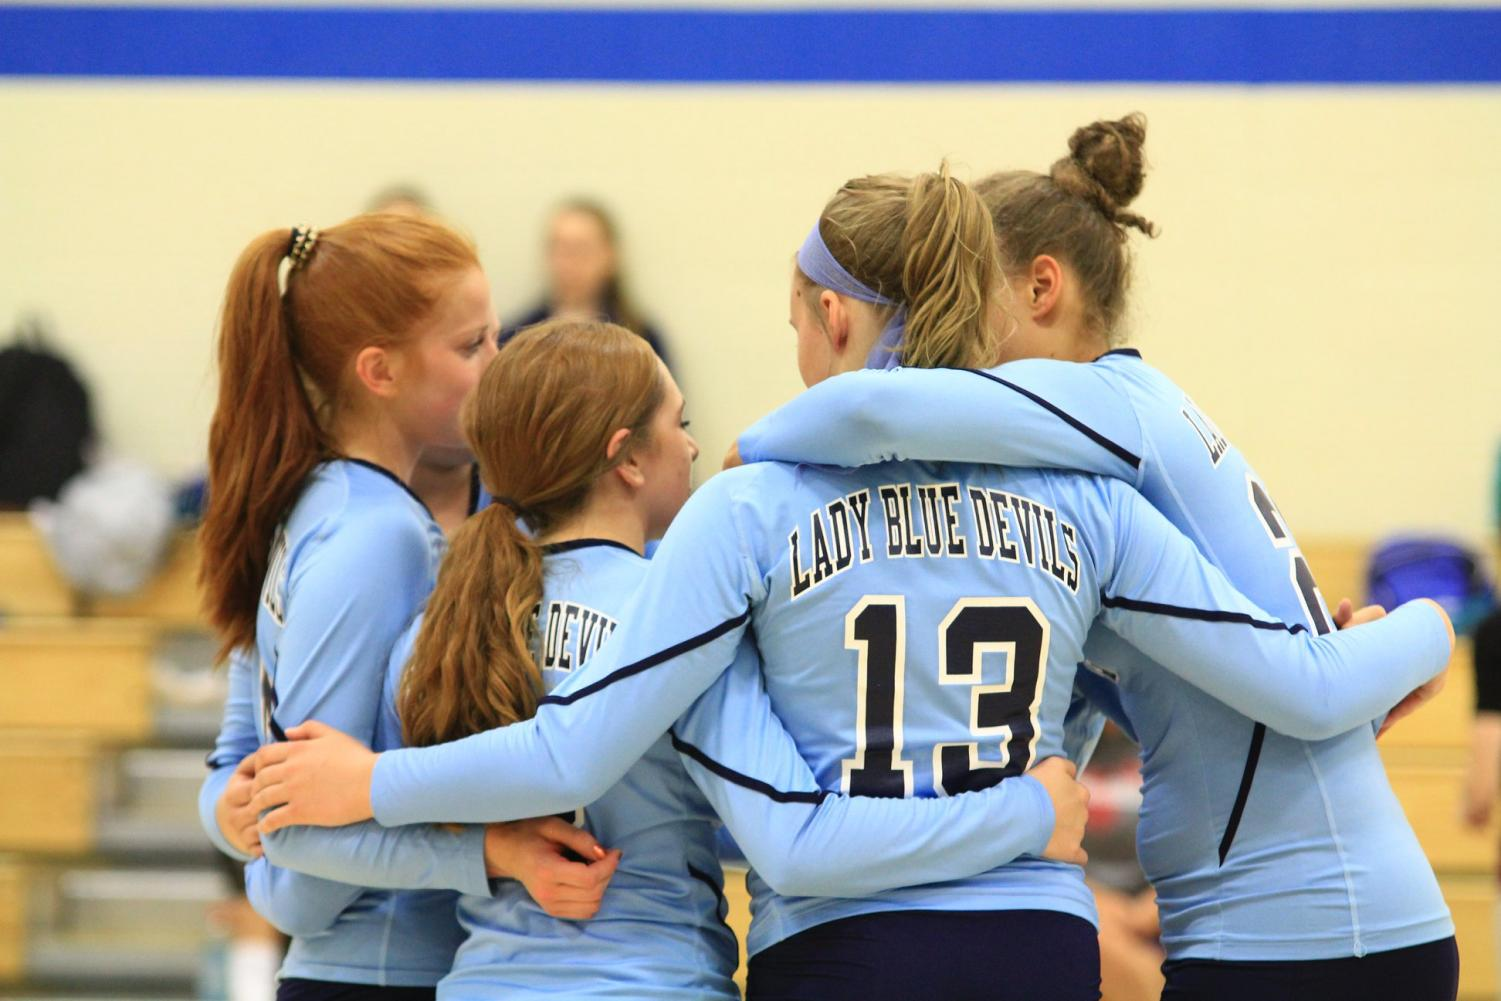 The volleyball team plays three matches in a busy sports week at Bellwood-Antis.